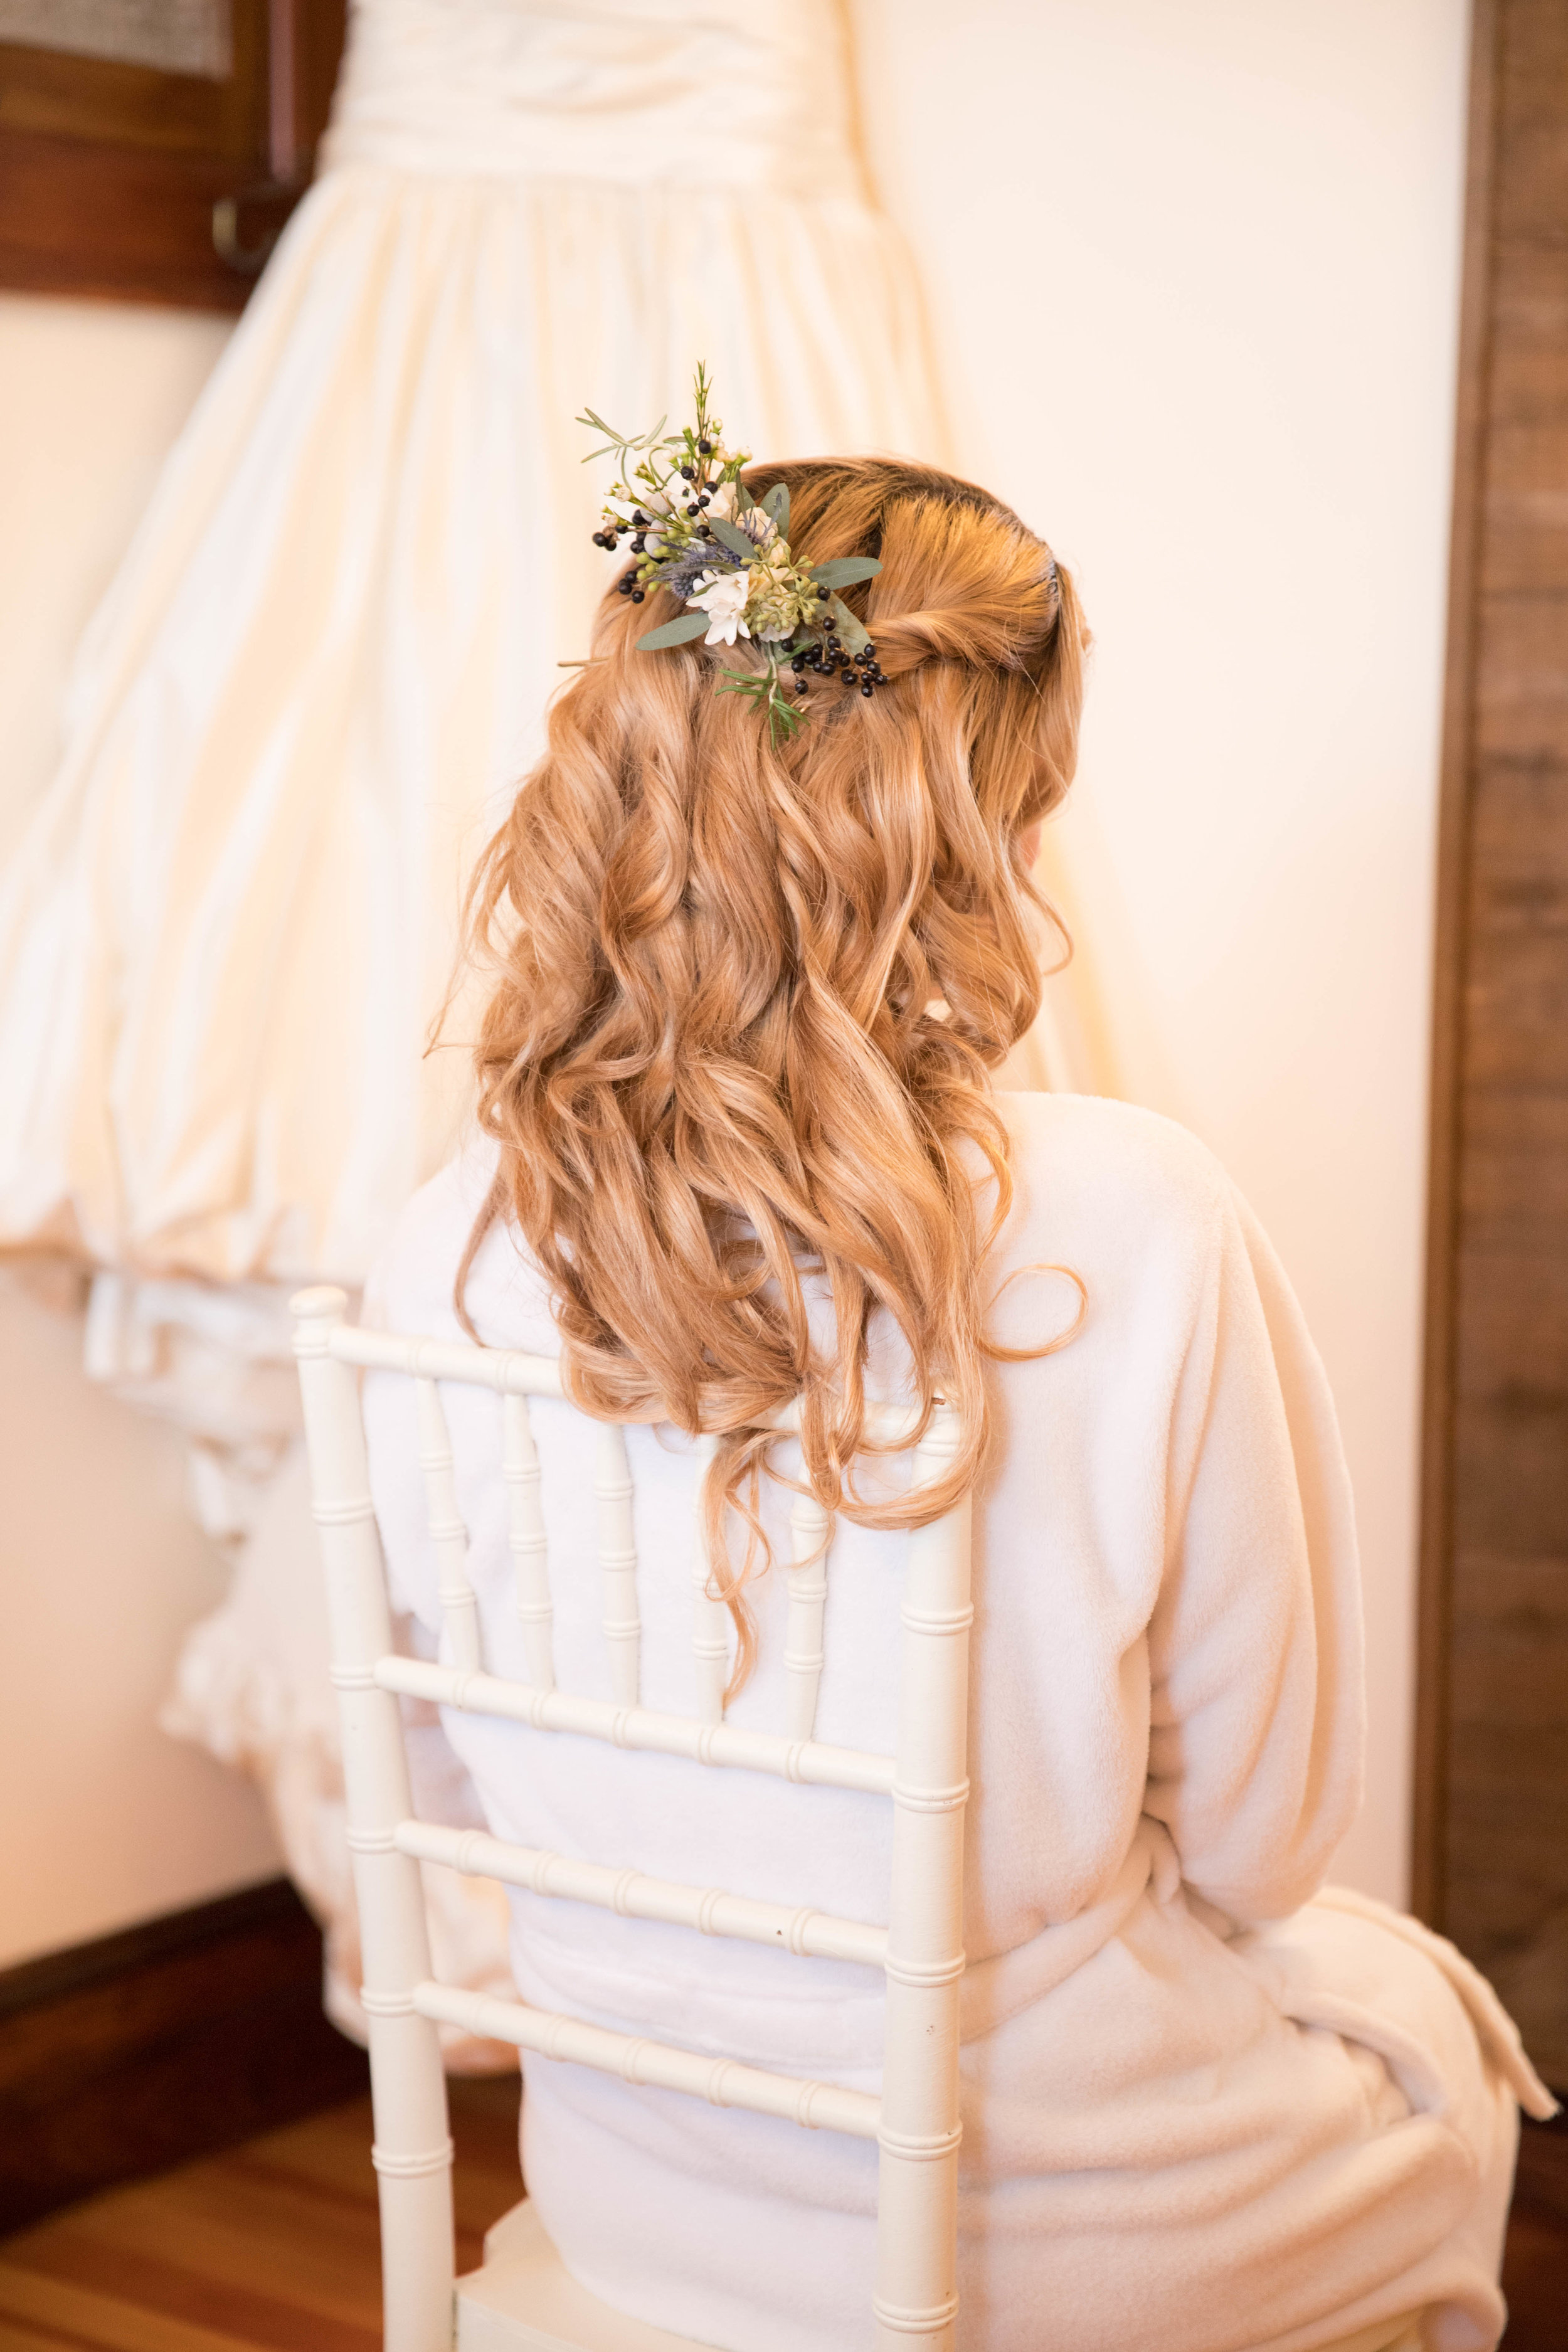 wedding budget tips wedding hair.jpg